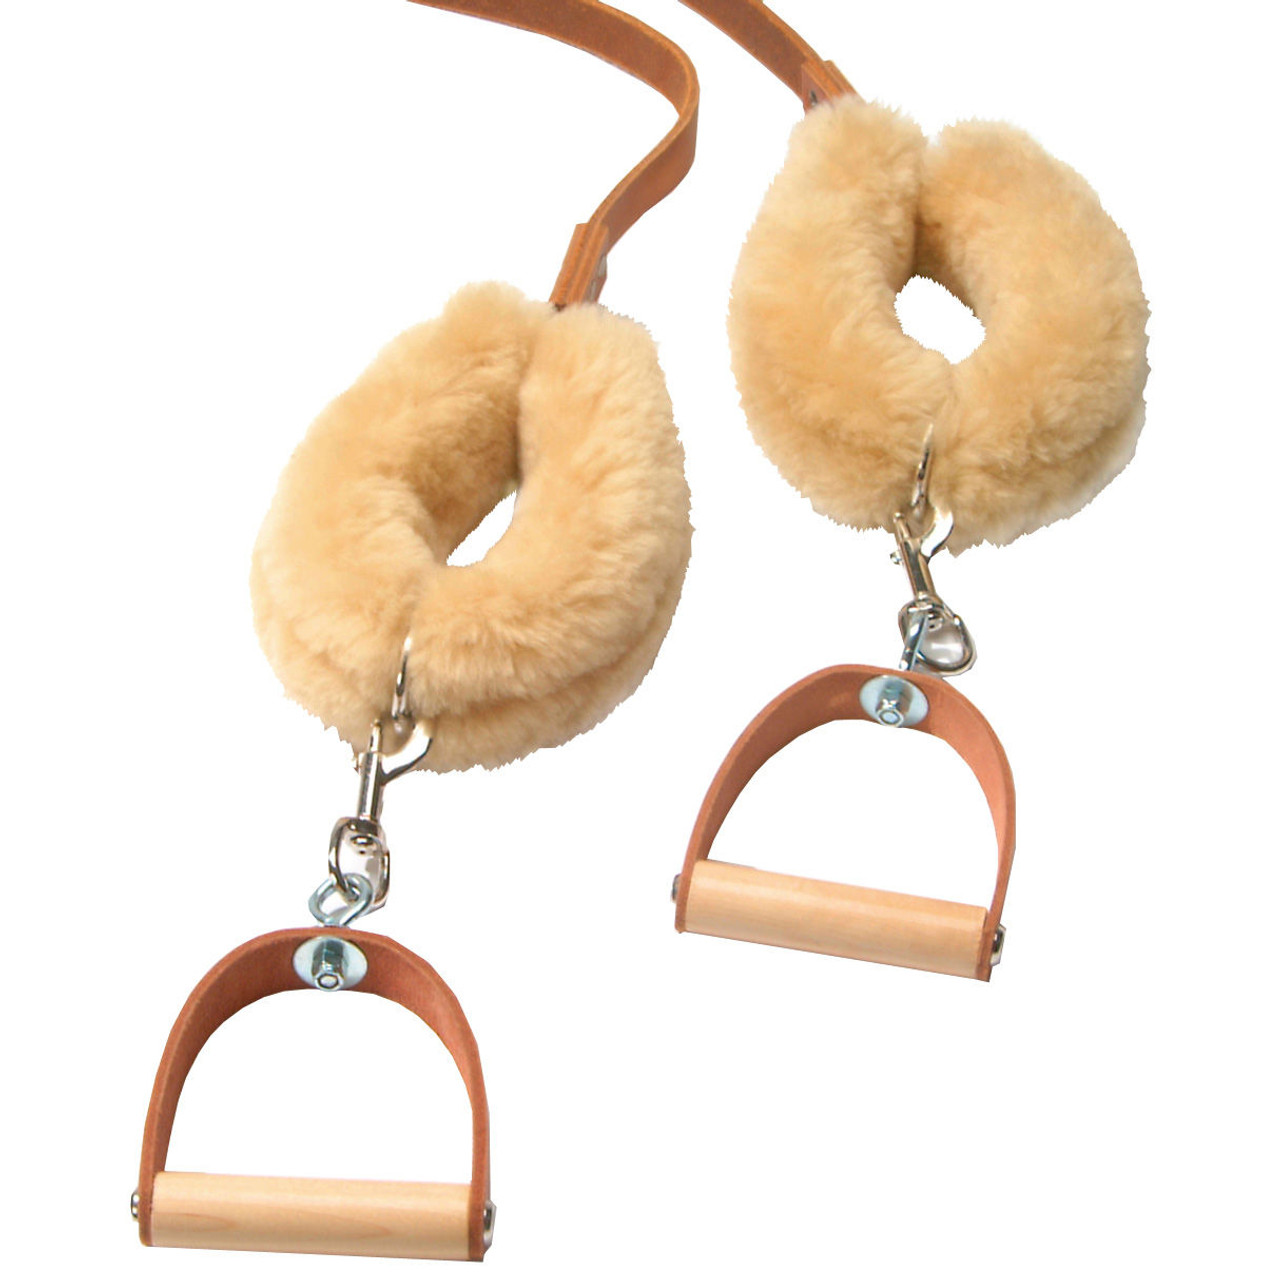 Sheepskin Leather Strap Covers